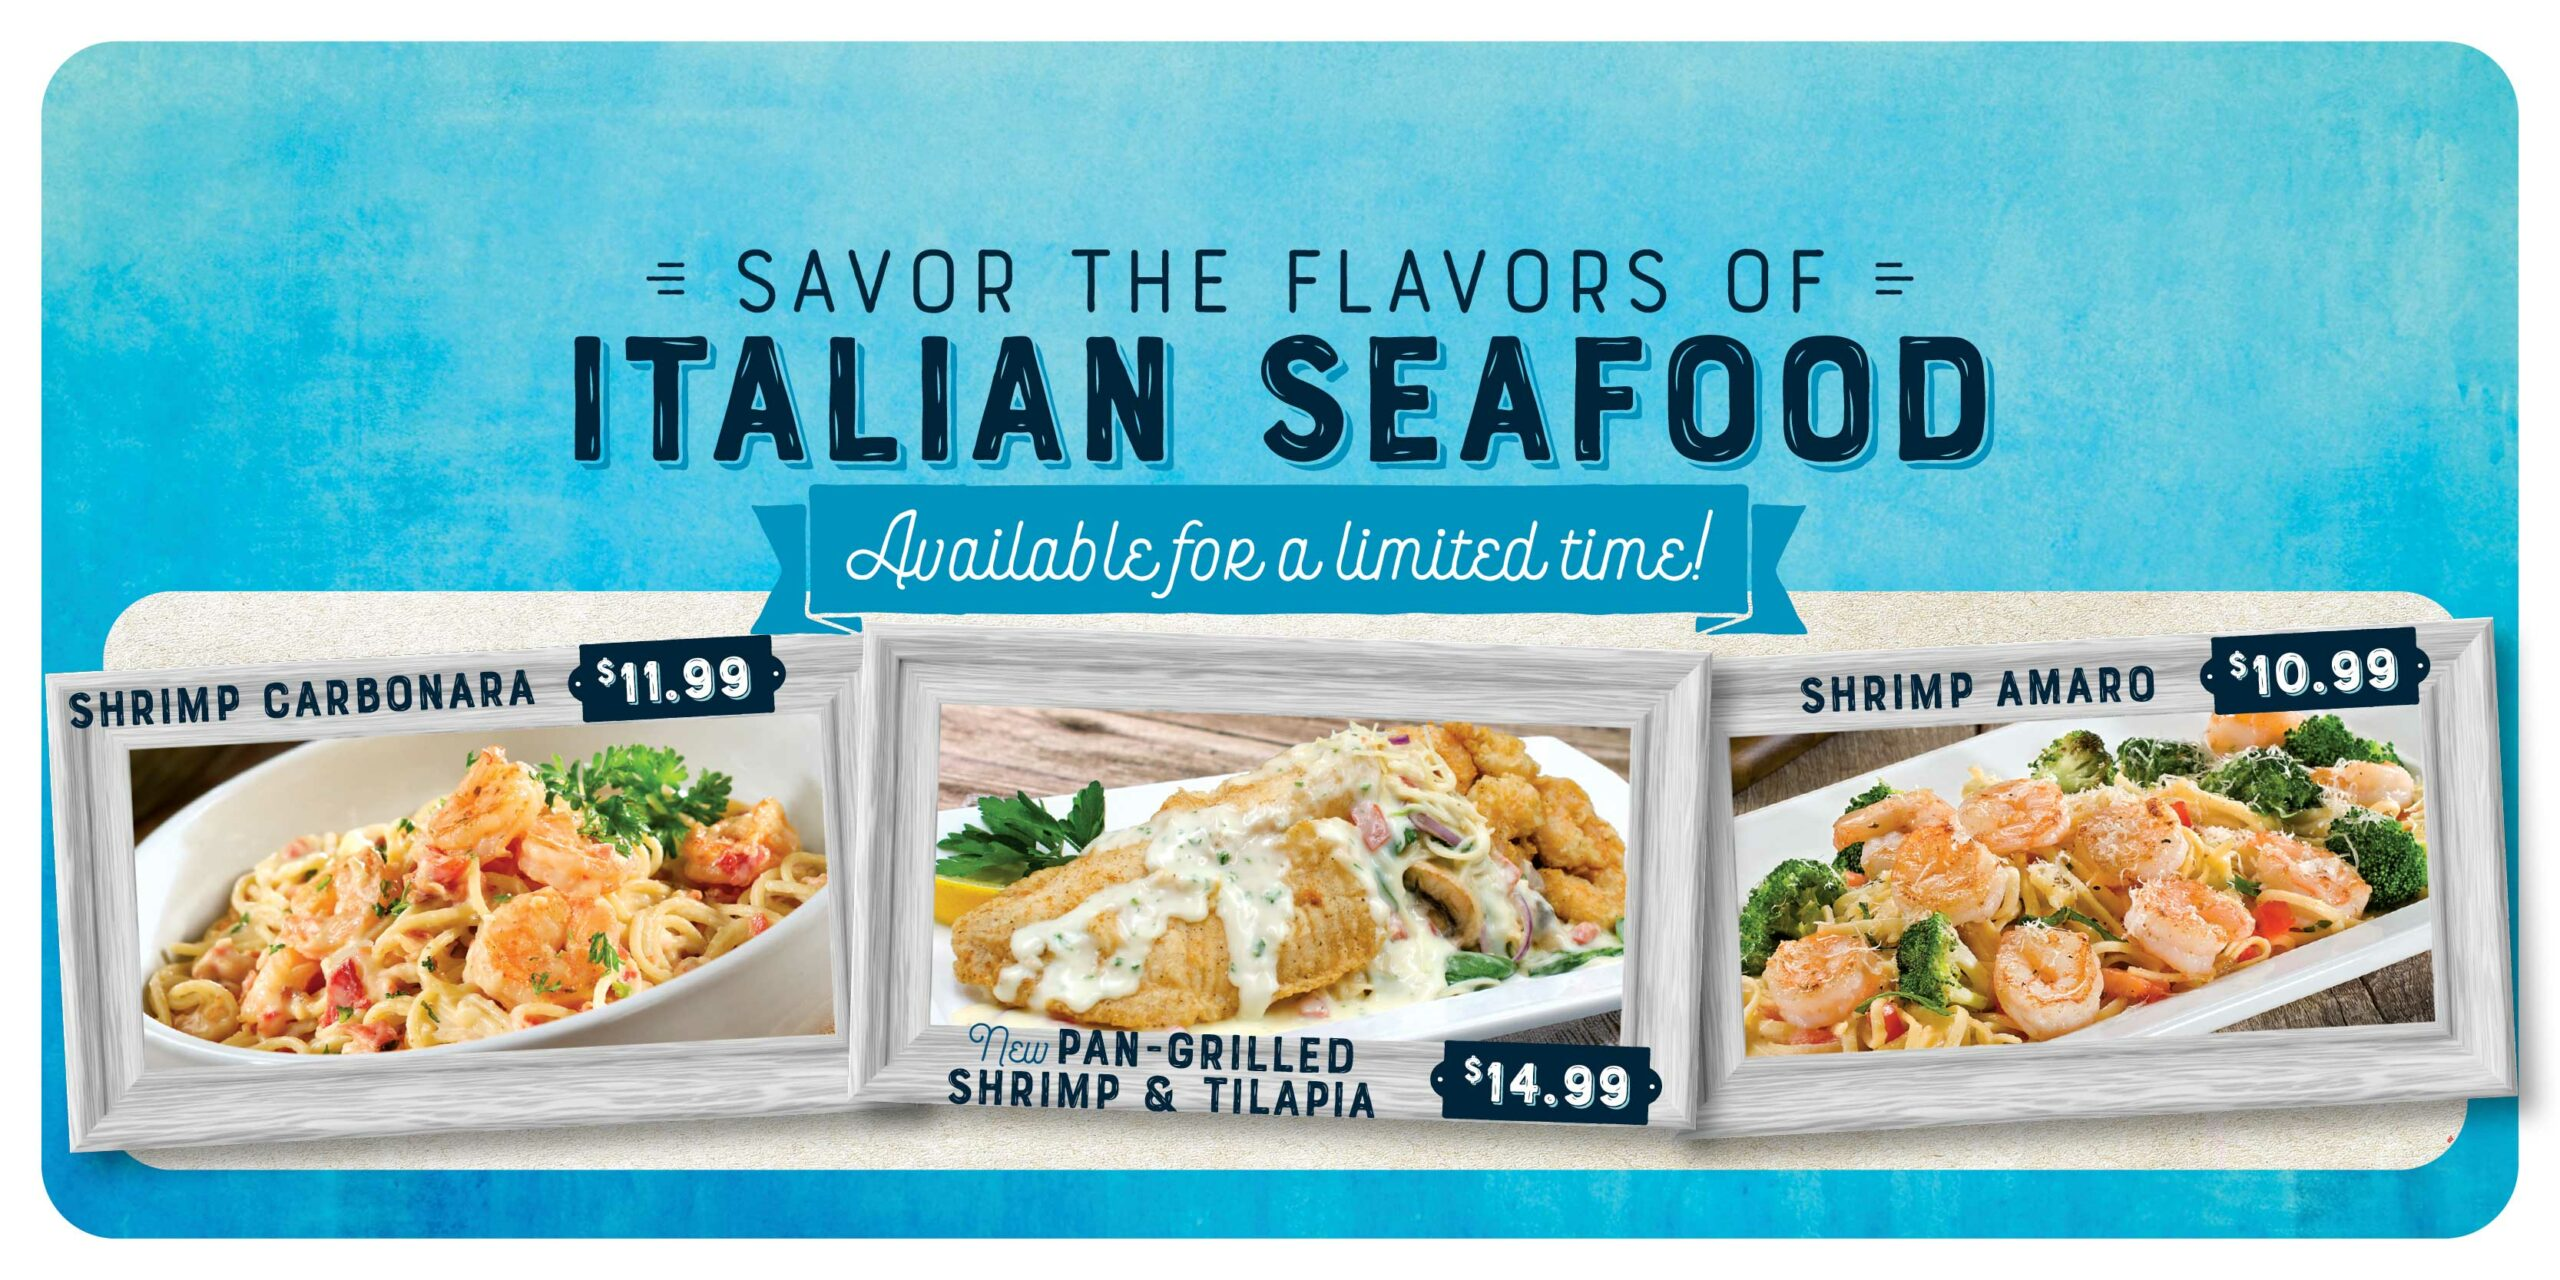 Savor the flavors of Italian Seafood. Available for a limited time! Shrimp Carbonara $11.99 New Pan-Grilled Shrimp & Tilapia $14.99 Shrimp Amaro $10.99